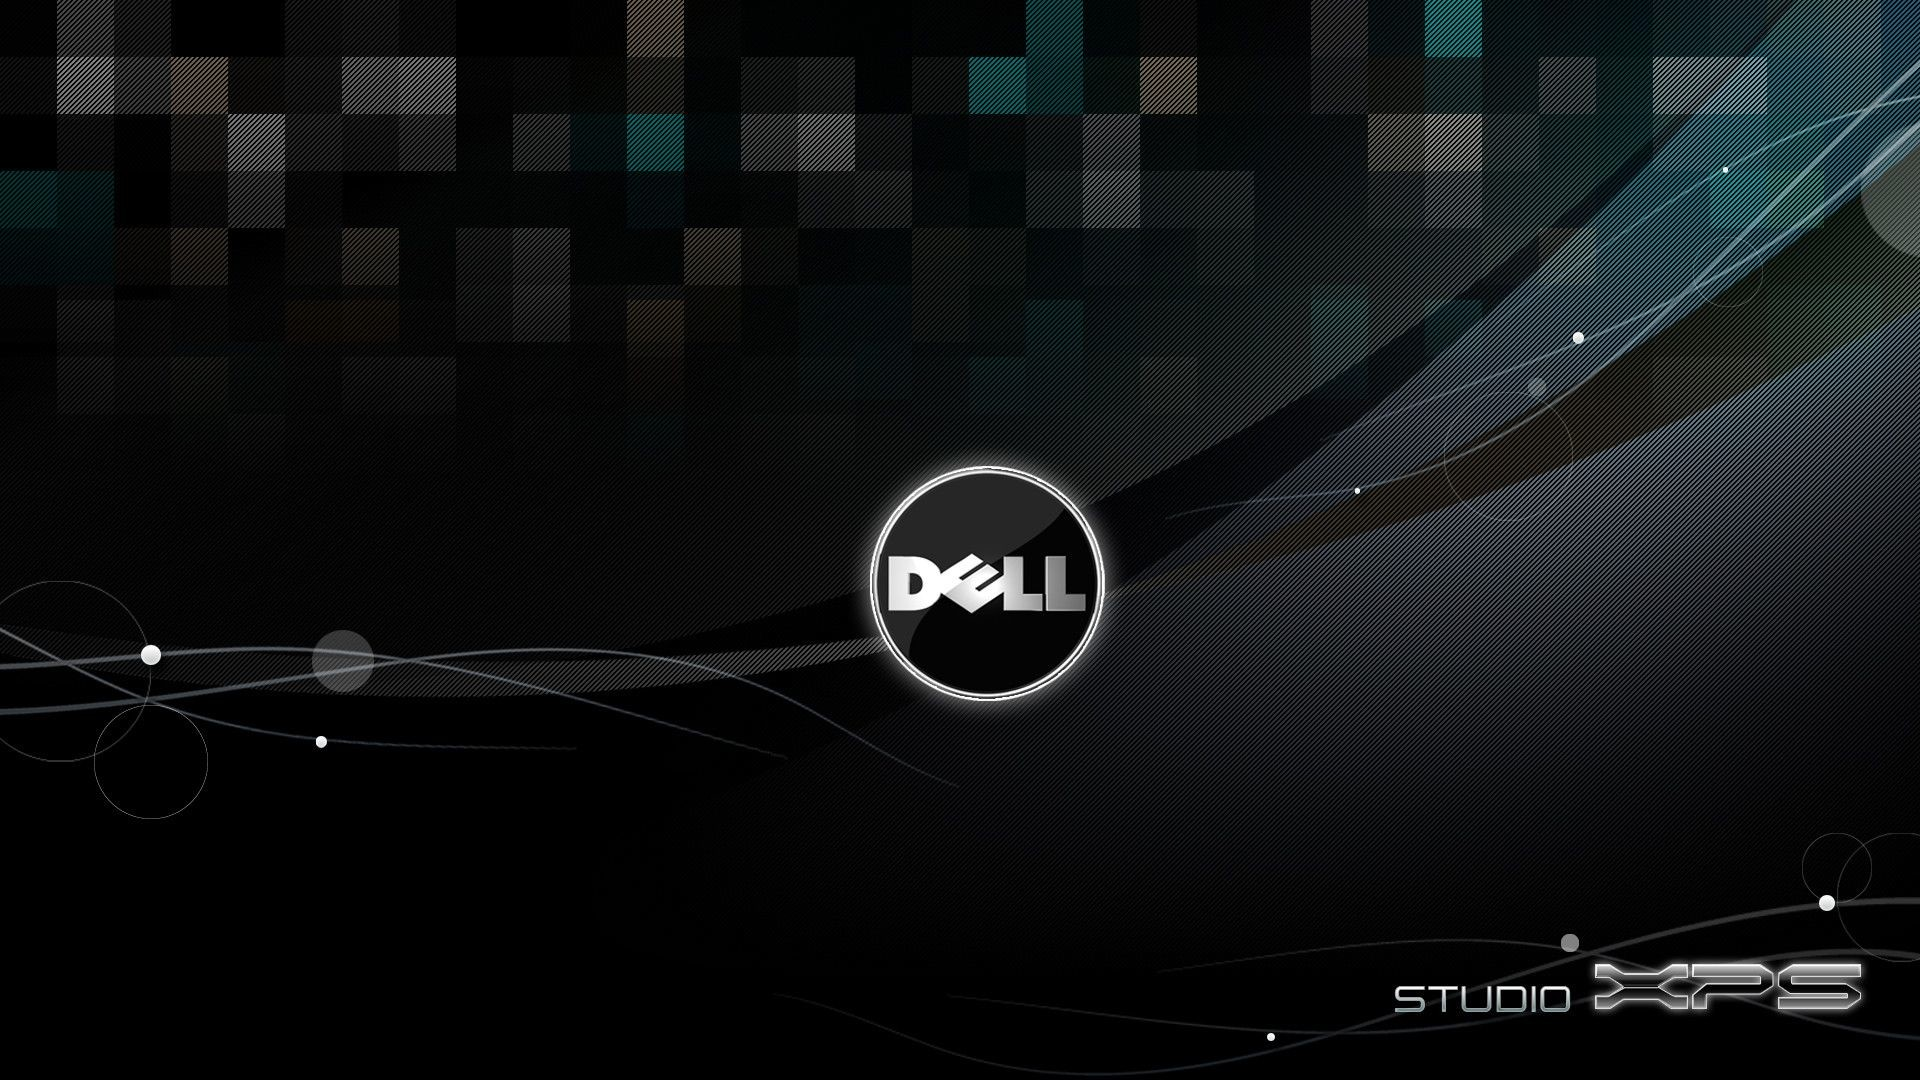 1920x1080 Dell Studio Wallpapers ·①